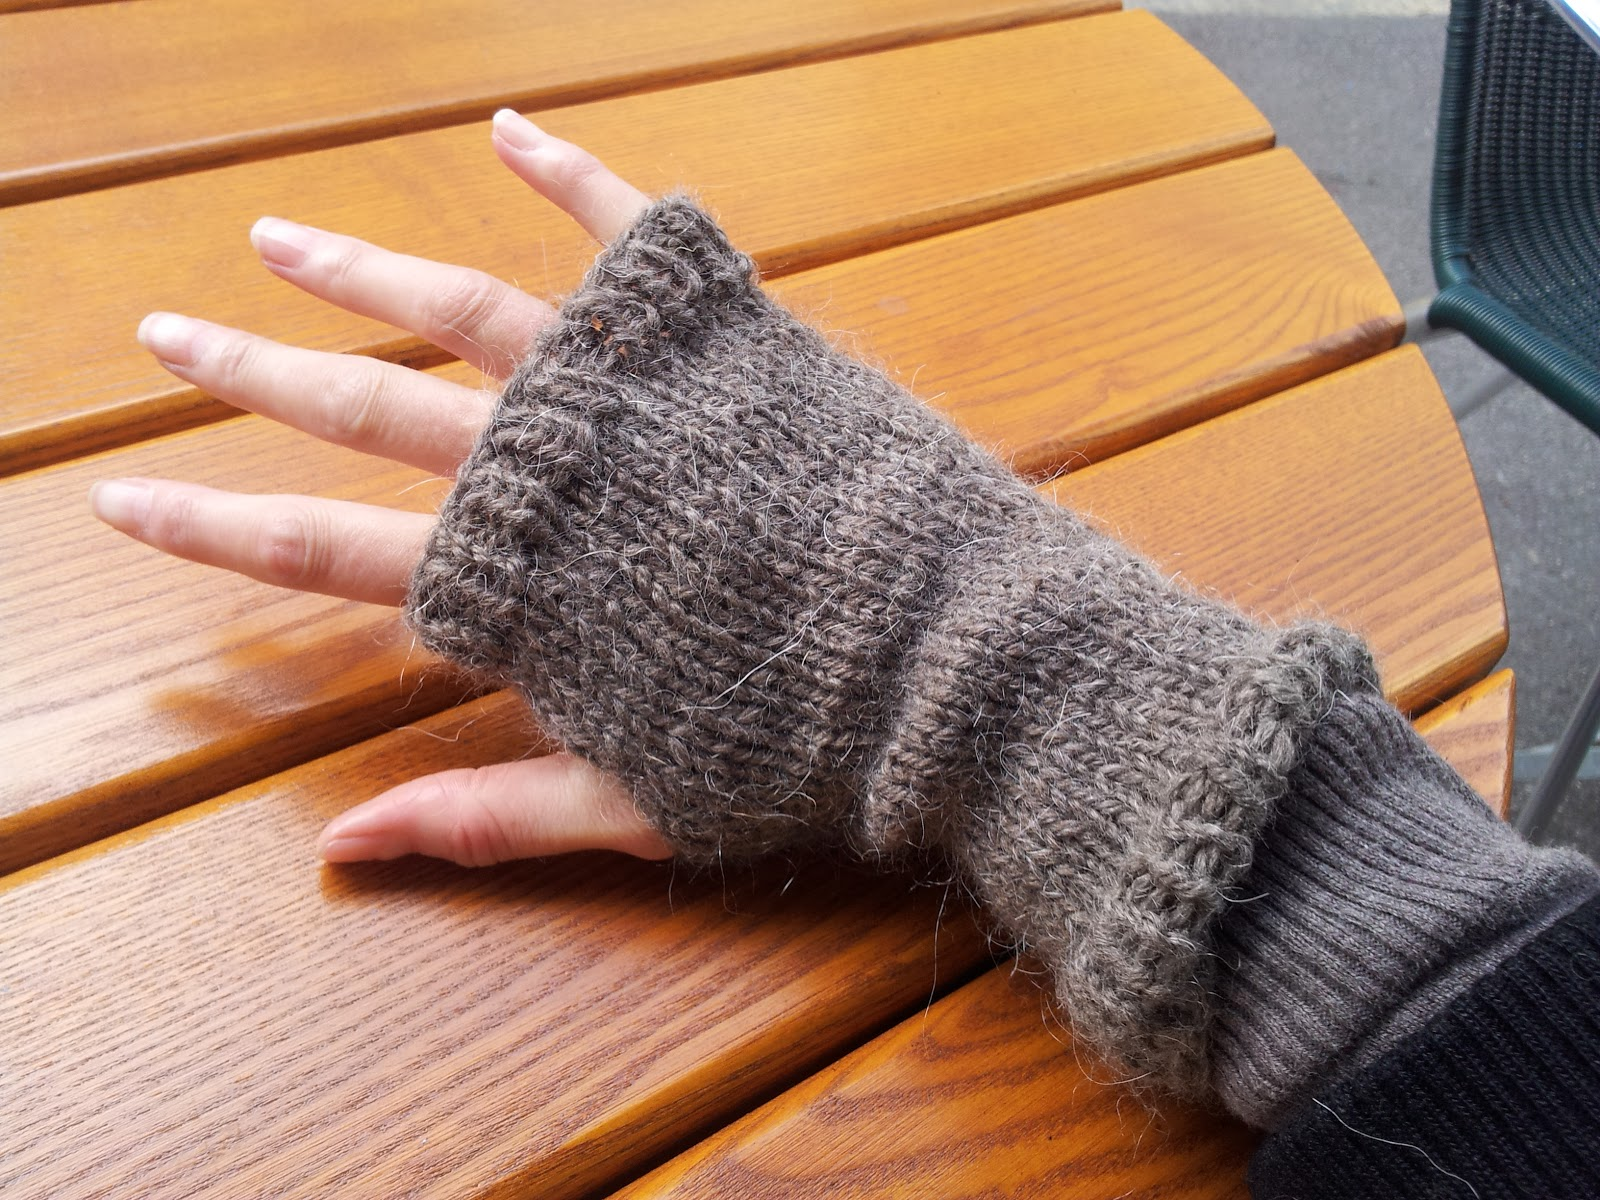 Wrist Warmers Knitting Pattern : Roving Around Crafts: Rustic-style hand knitted wrist warmers